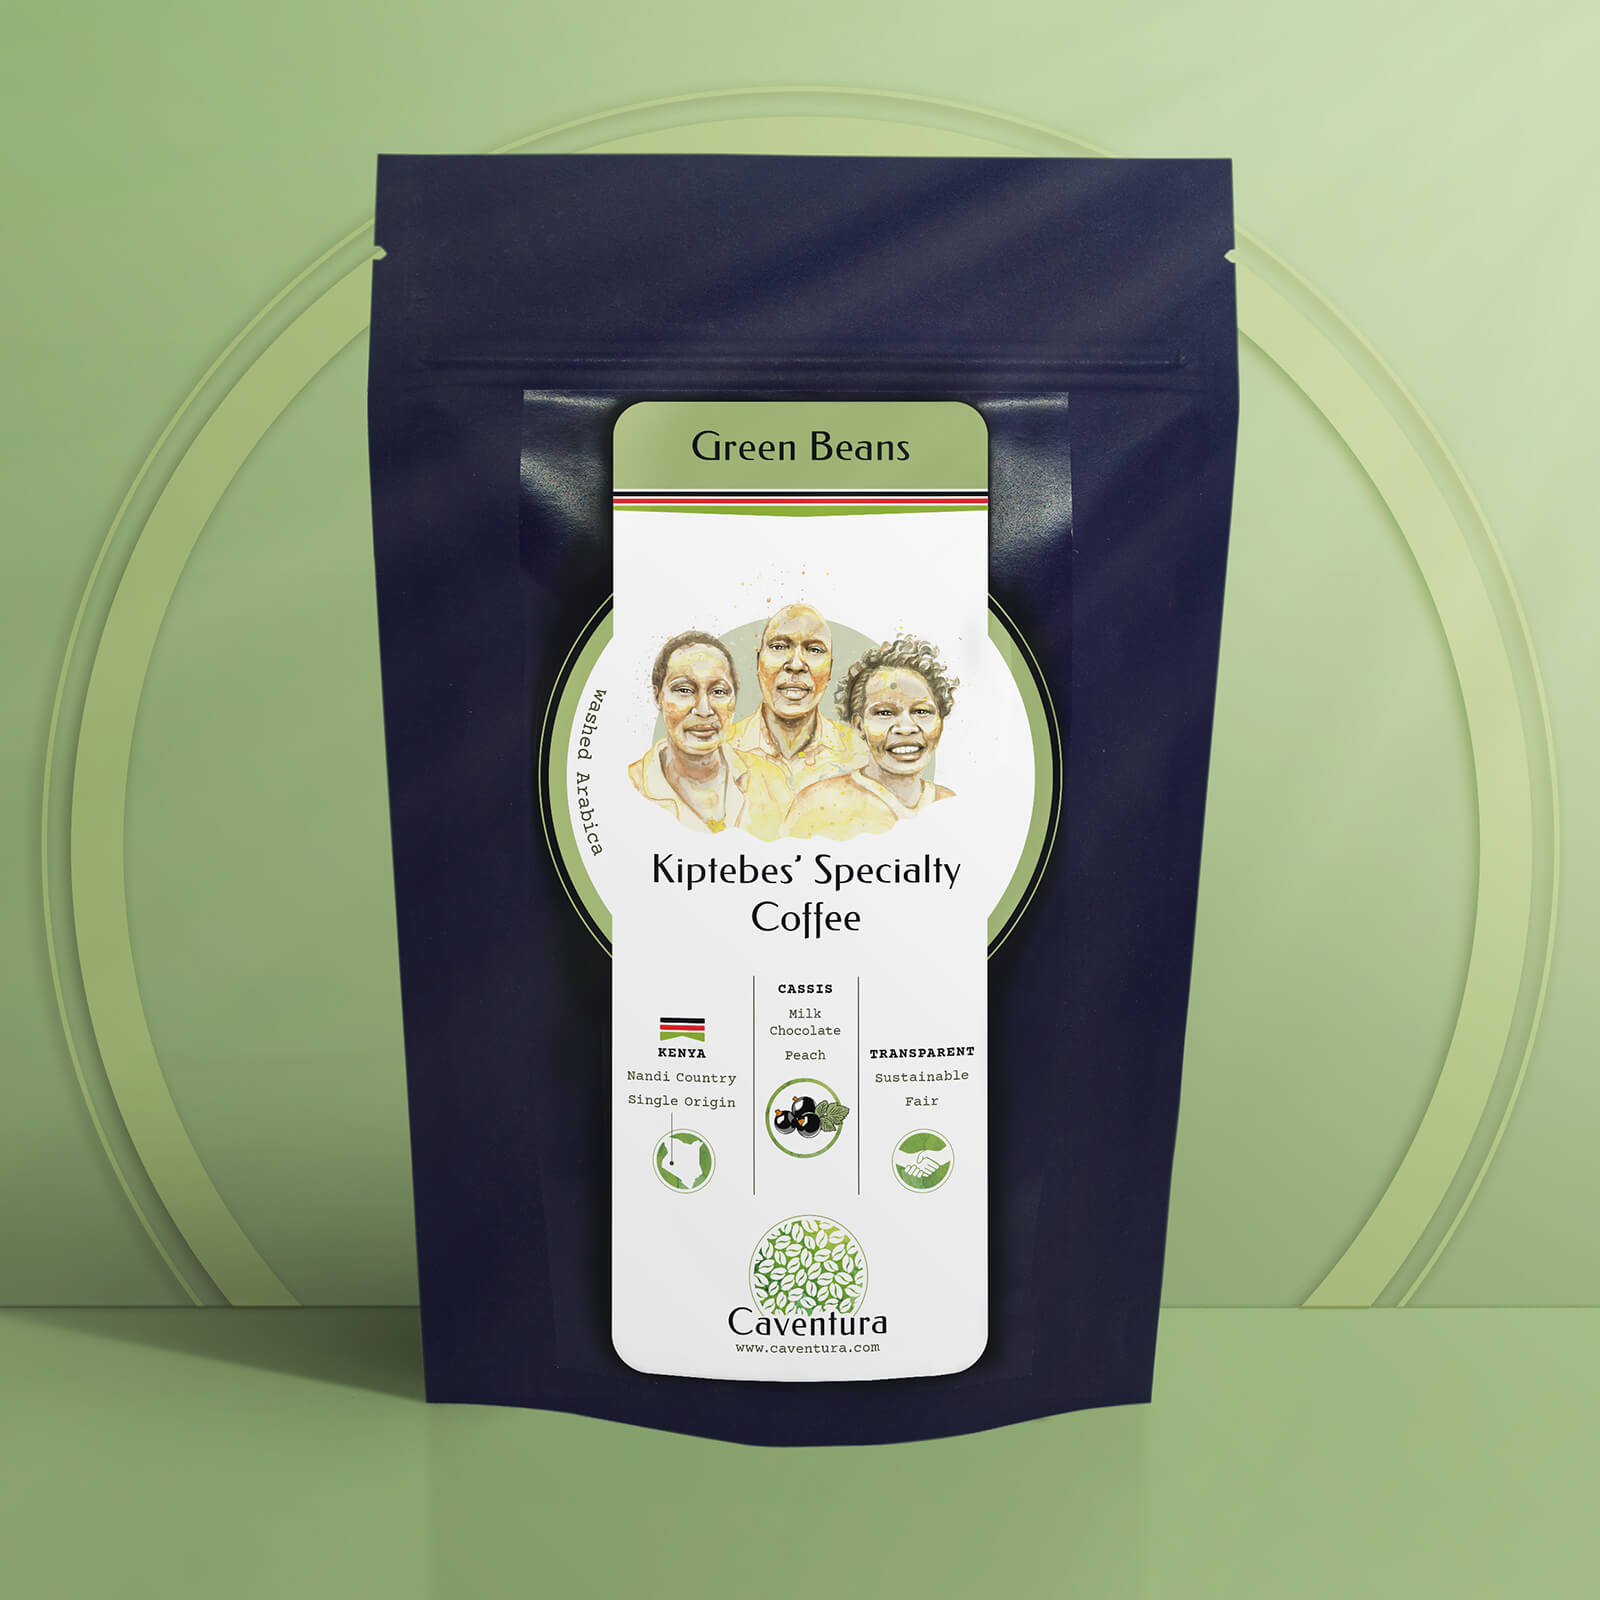 Kiptebes' Specialty Coffee – Green Beans